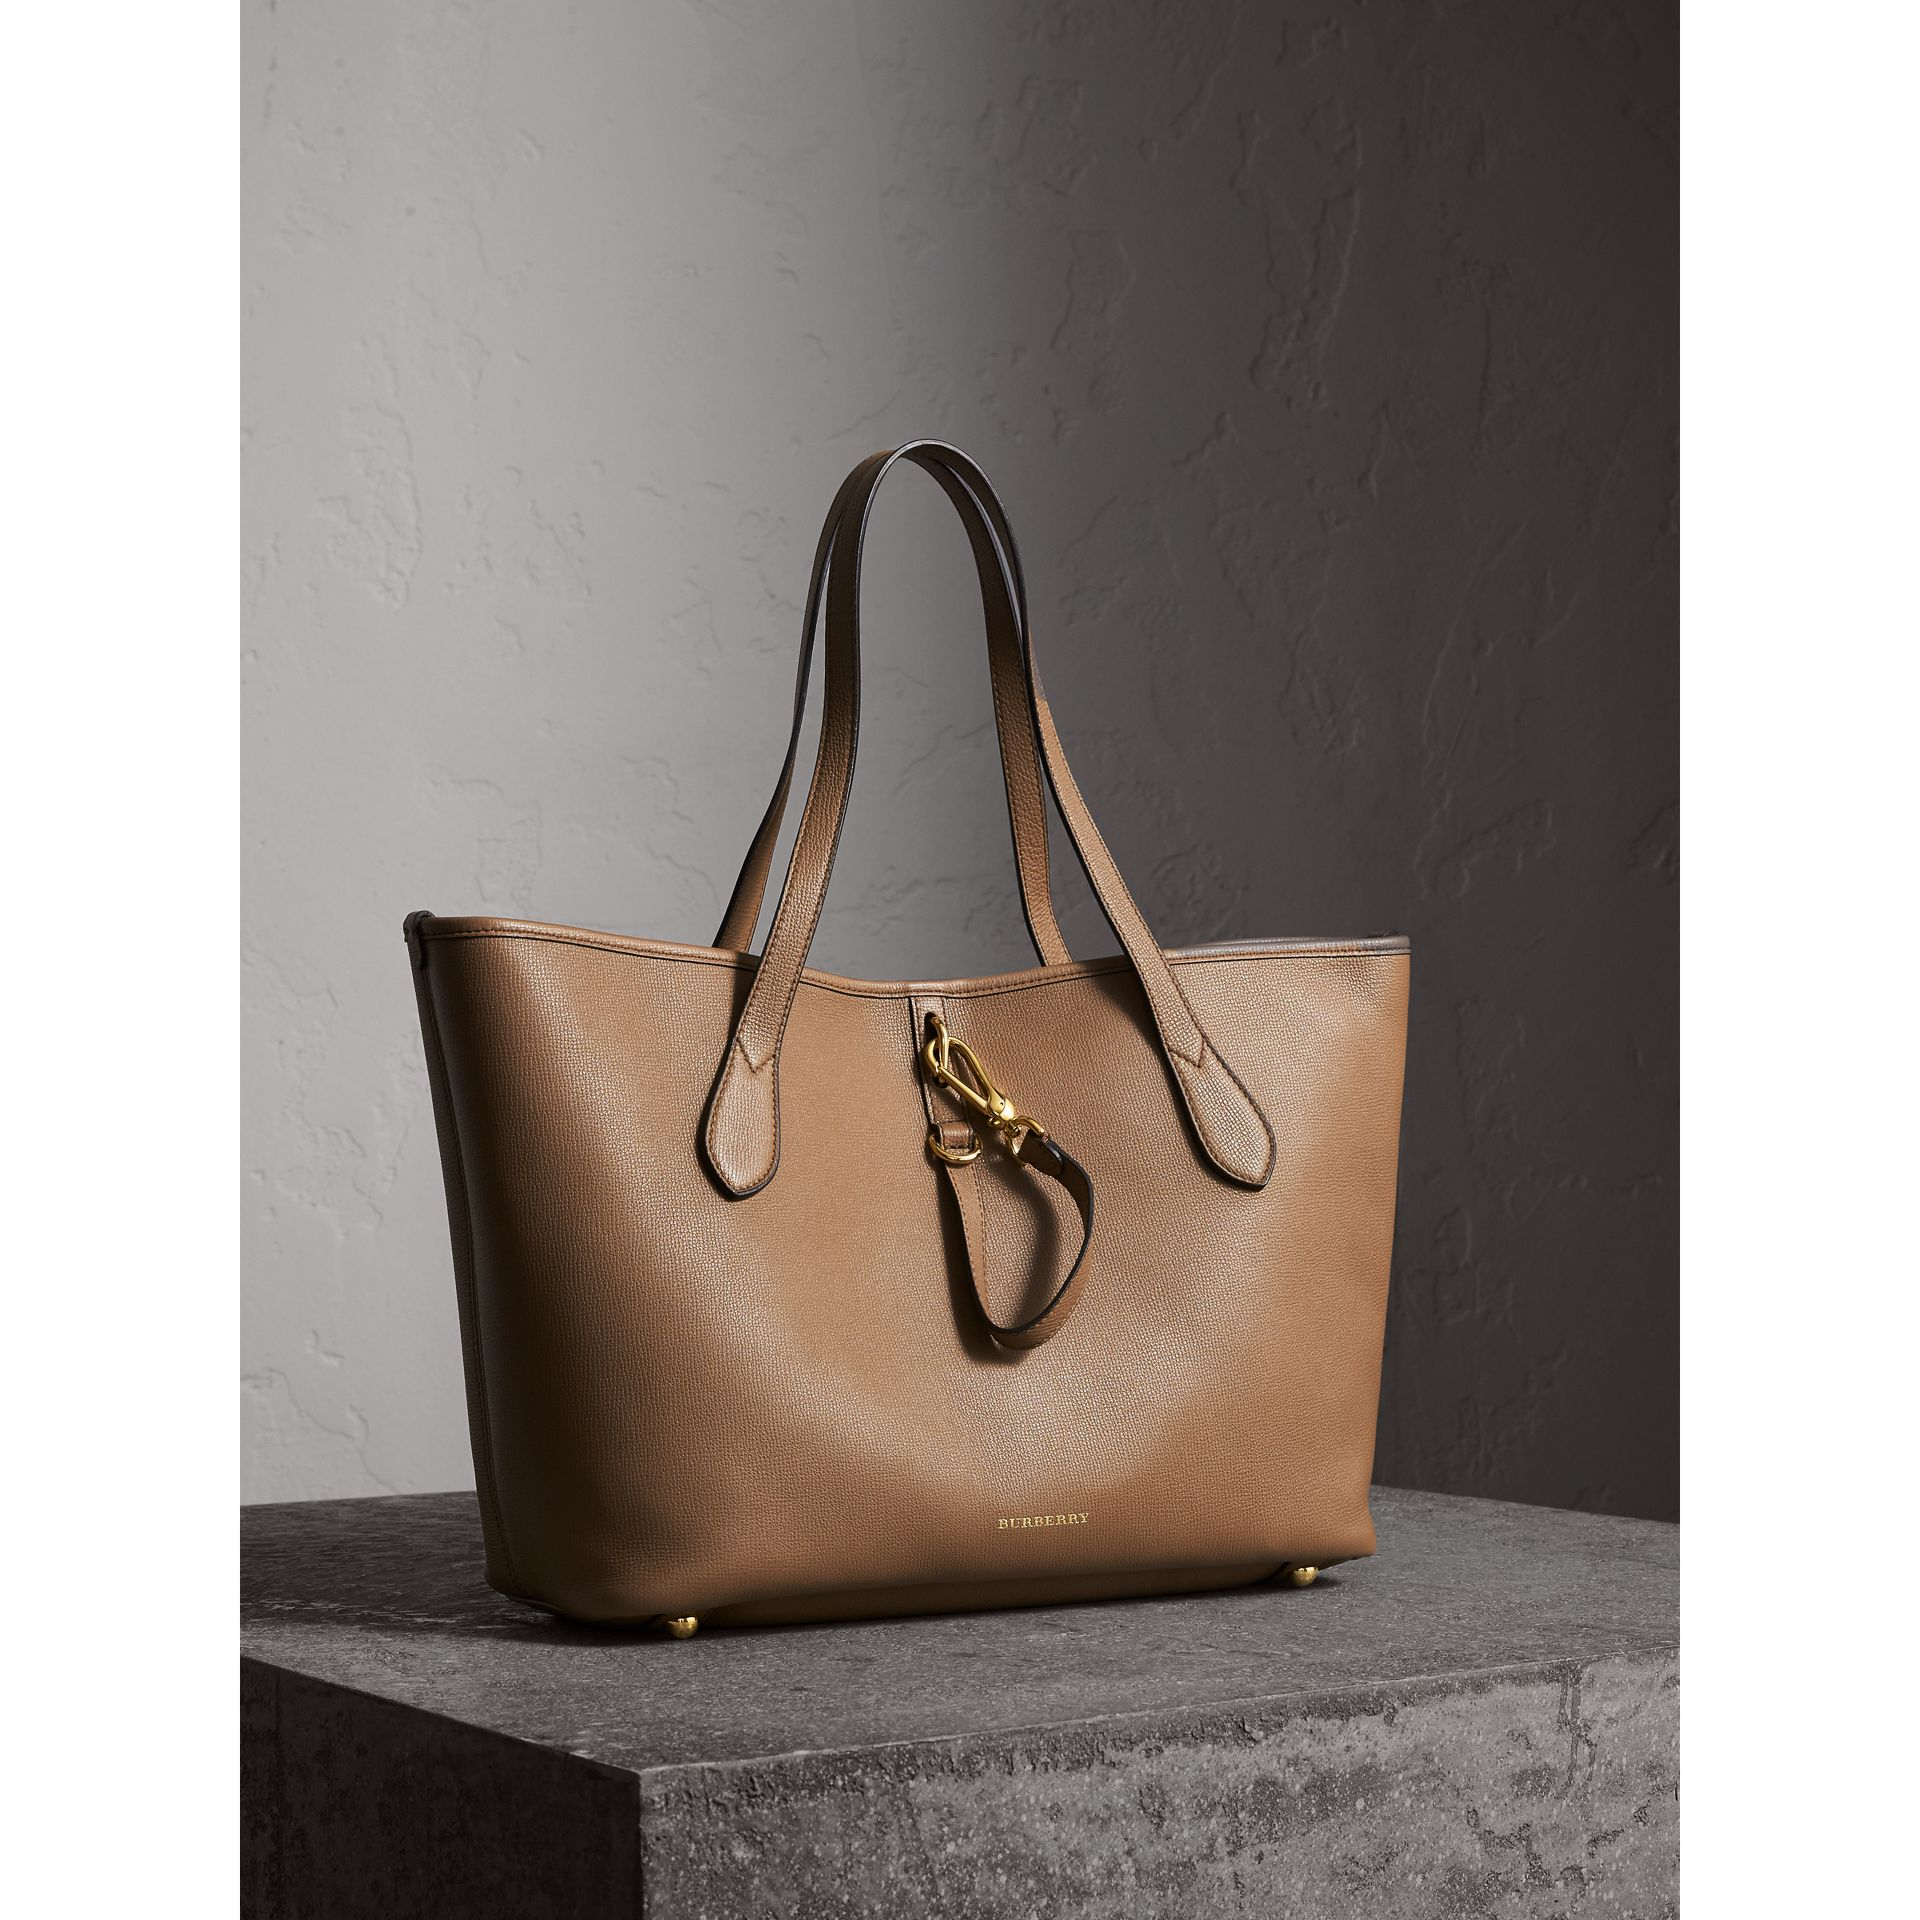 Sac tote medium en cuir grainé (Sable Foncé) - photo de la galerie 6